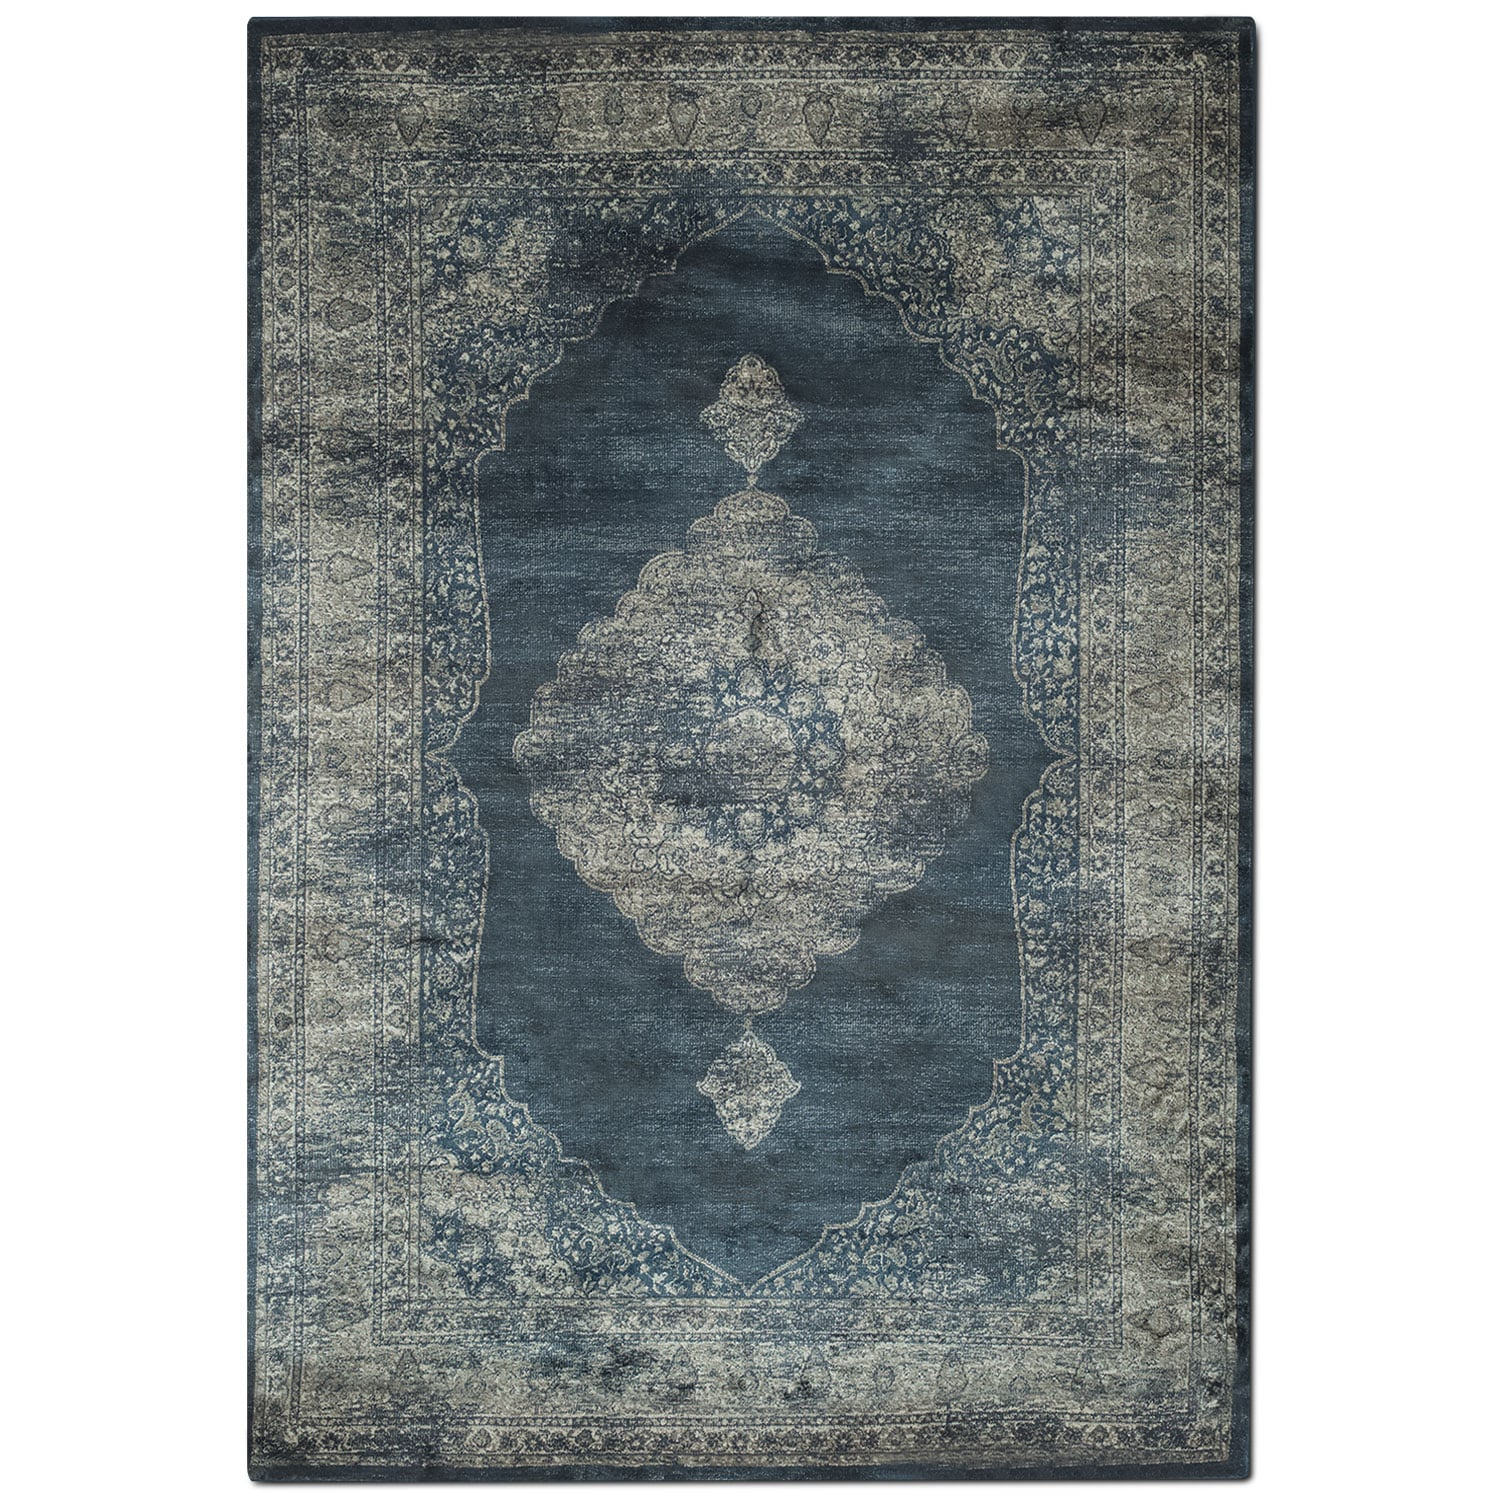 Rugs - Sonoma 5' x 8' Area Rug - Beige and Gray